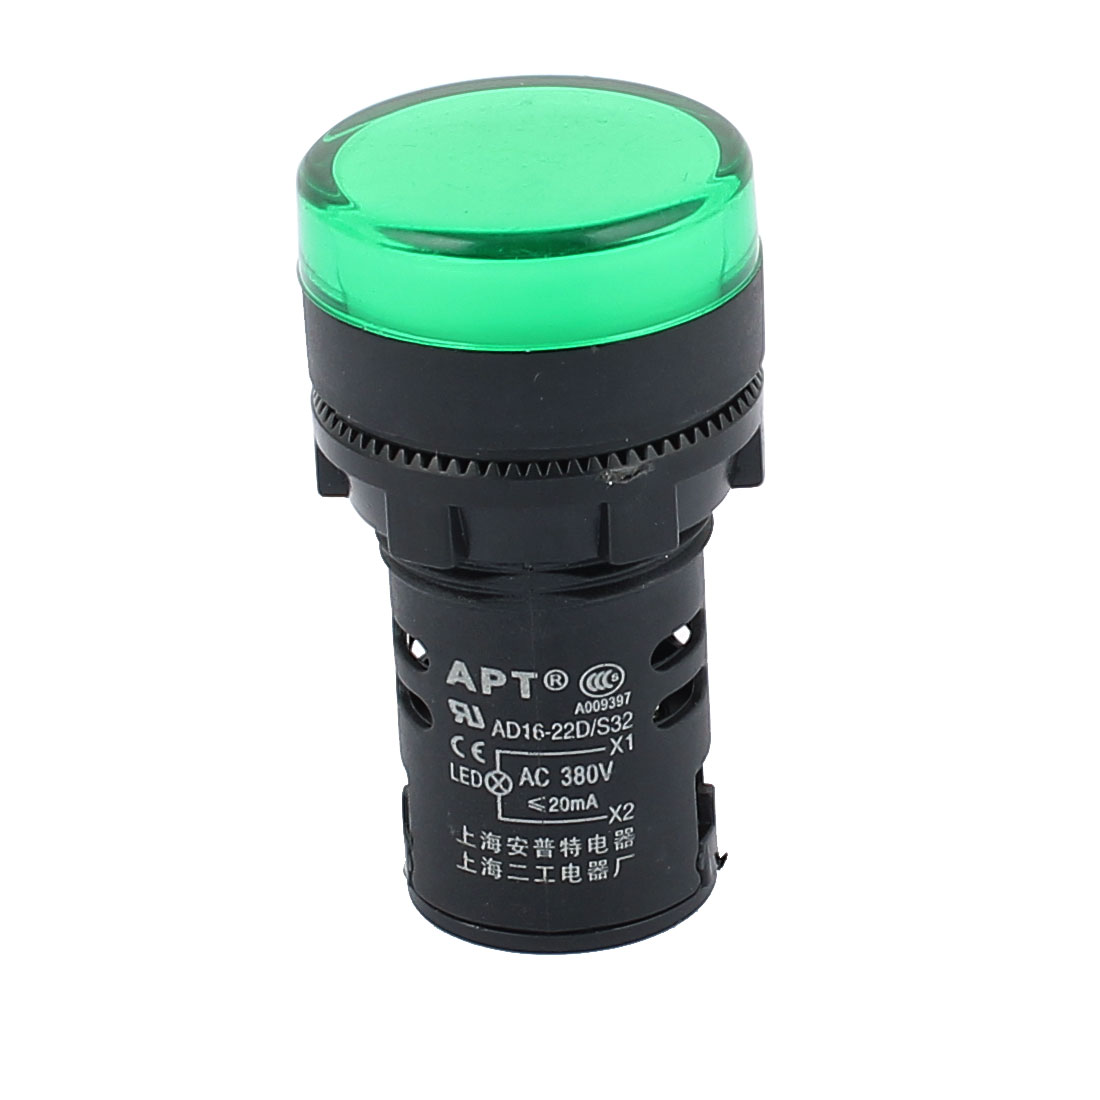 AC 380V 22mm Mount Dia Round Indicator Pilot Light Signal Lamp Green